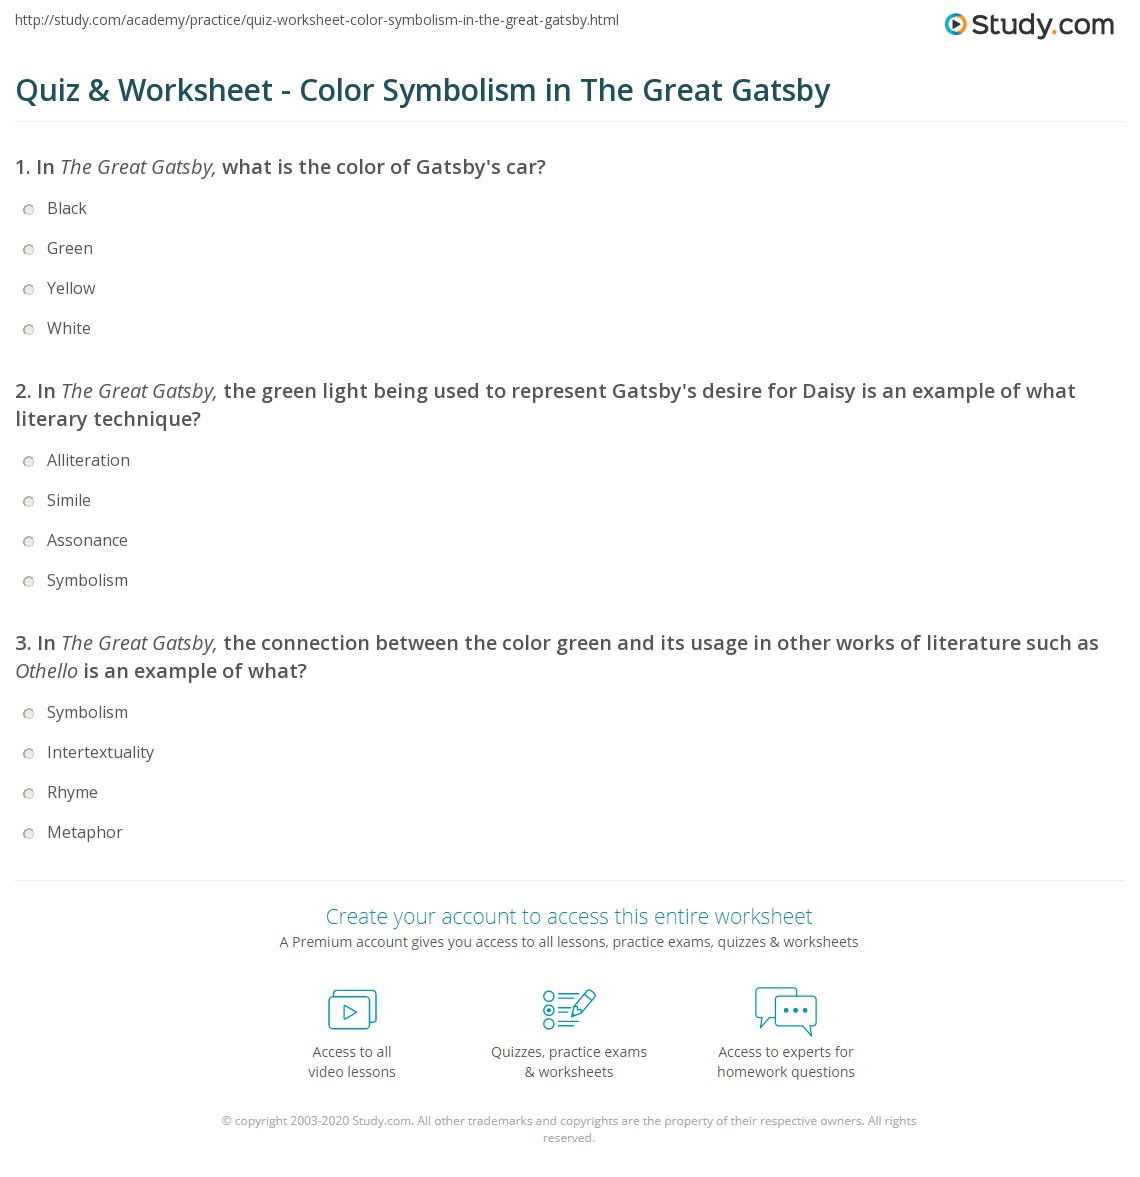 Quiz & Worksheet - Color Symbolism in The Great Gatsby | Study.com